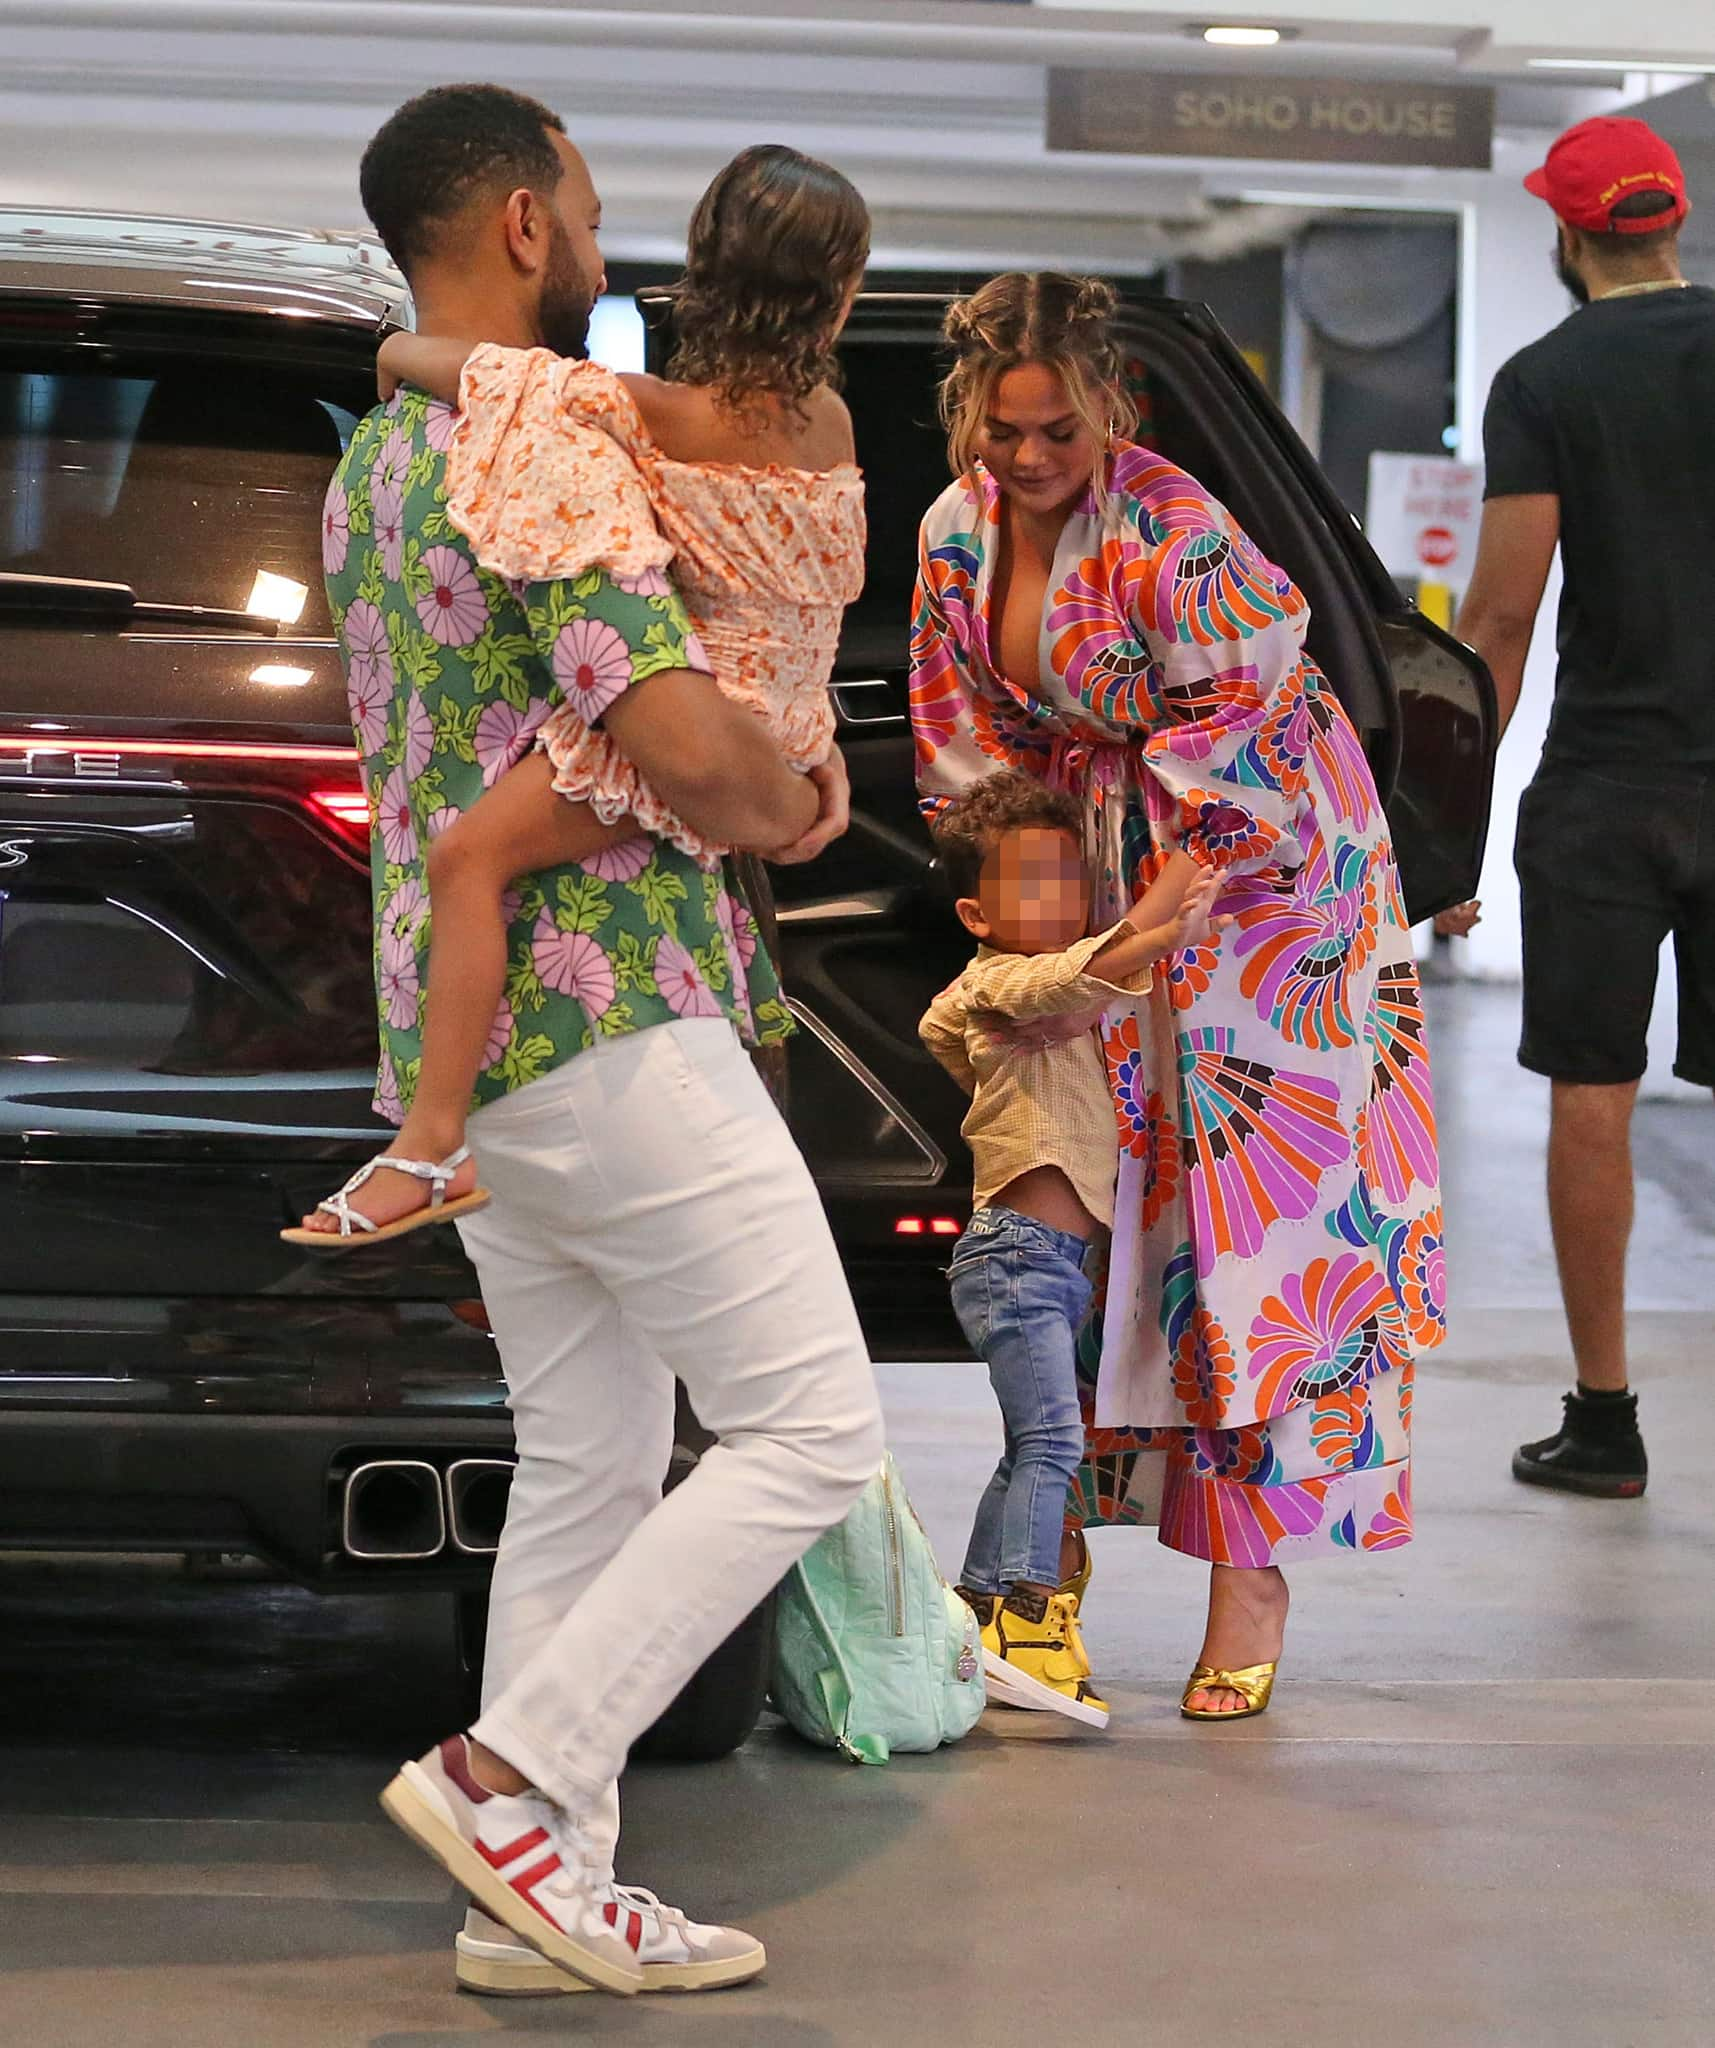 Chrissy Teigen and John Legend take their kids, Lune and Miles, to lunch at Soho House in West Hollywood on June 26, 2021